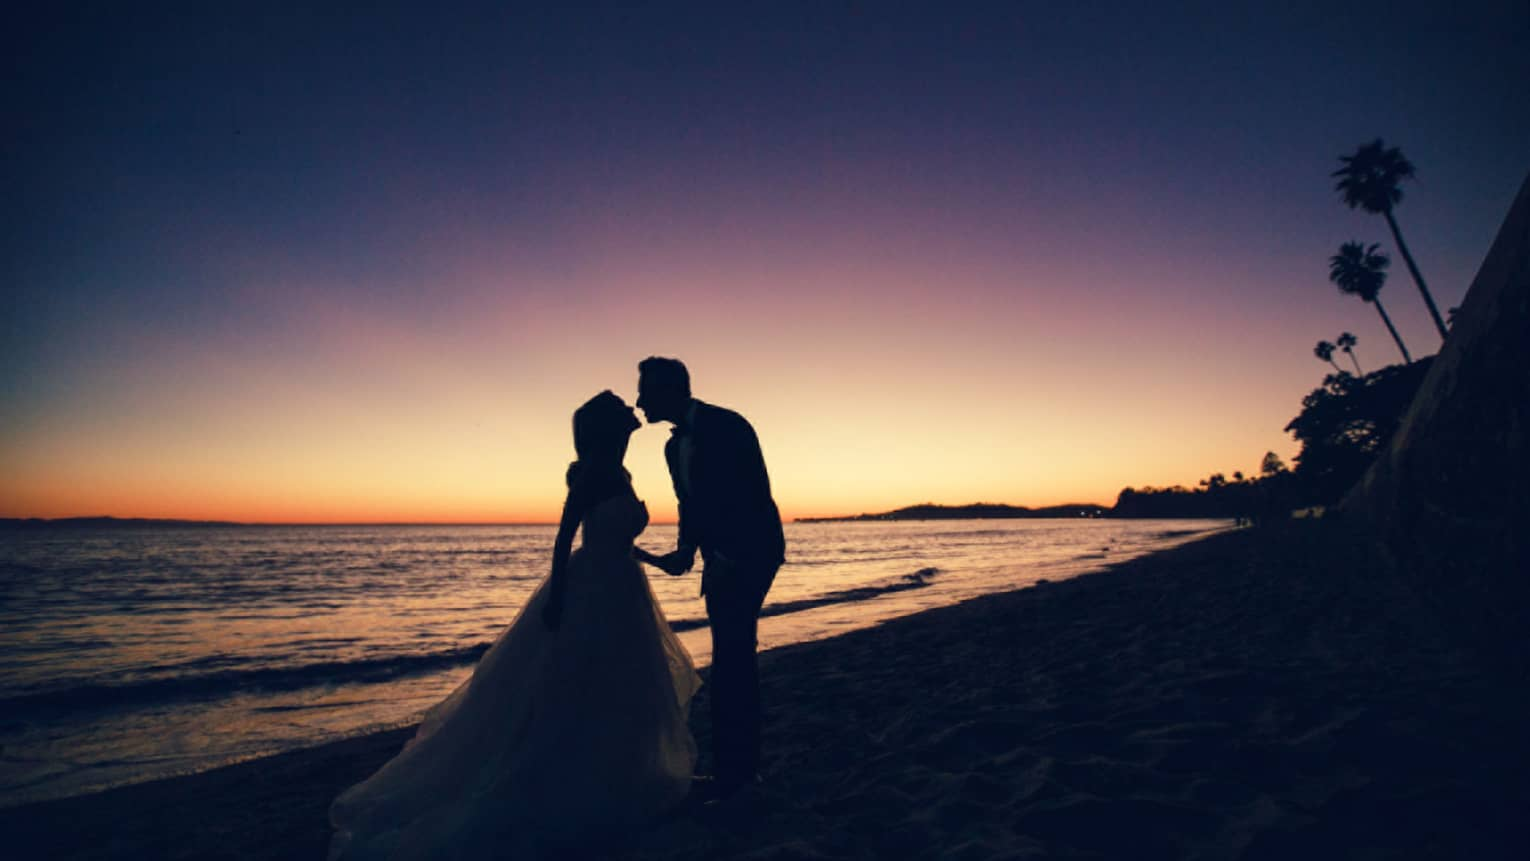 Silhouette of bride and groom leaning in for a kiss on beach at sunset